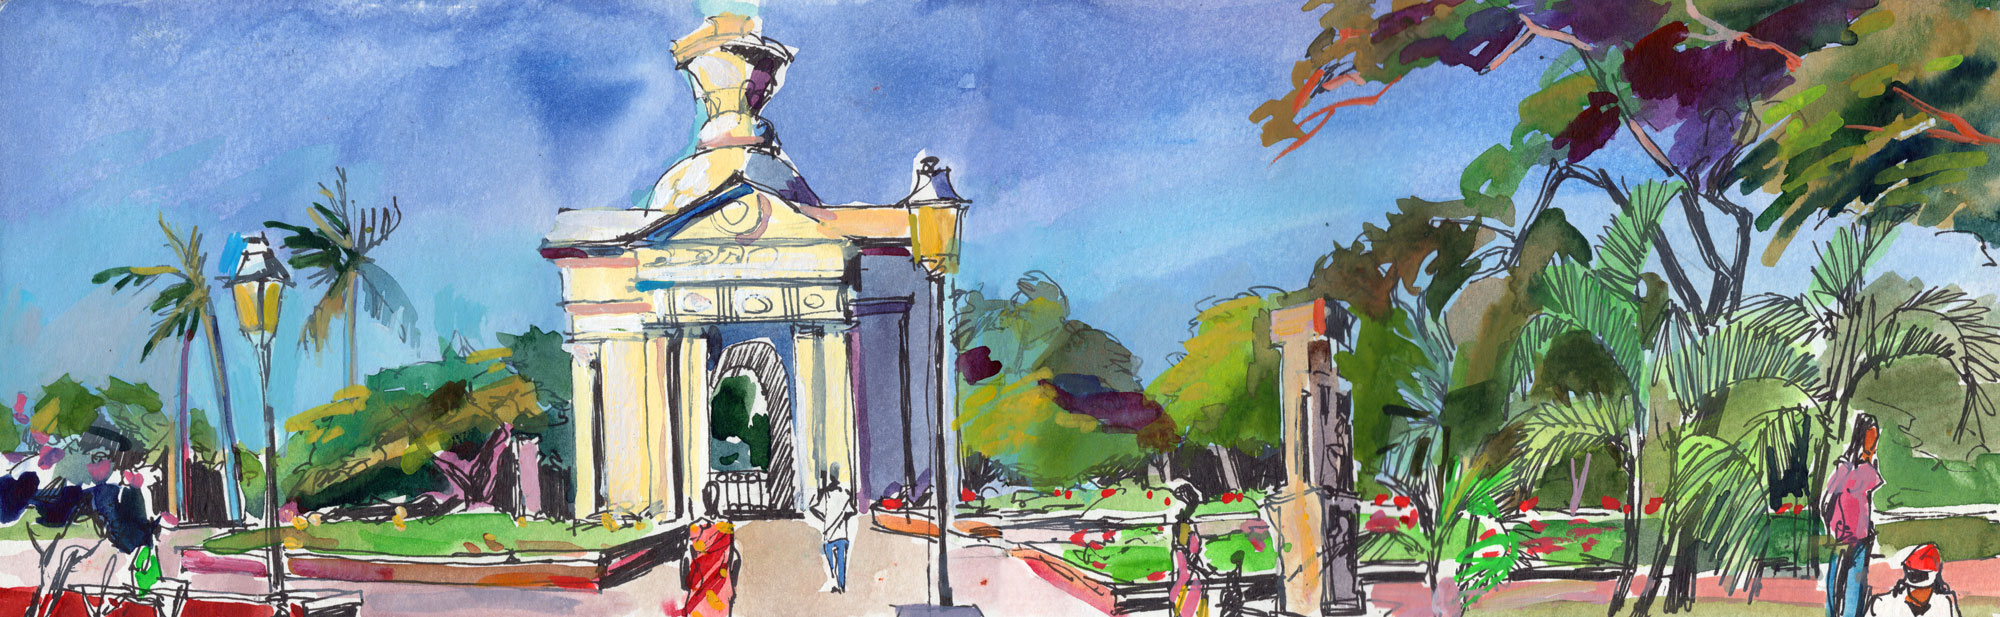 13. Bharathi park rotond Watercolours, ink on paper Original 42cmx12cm